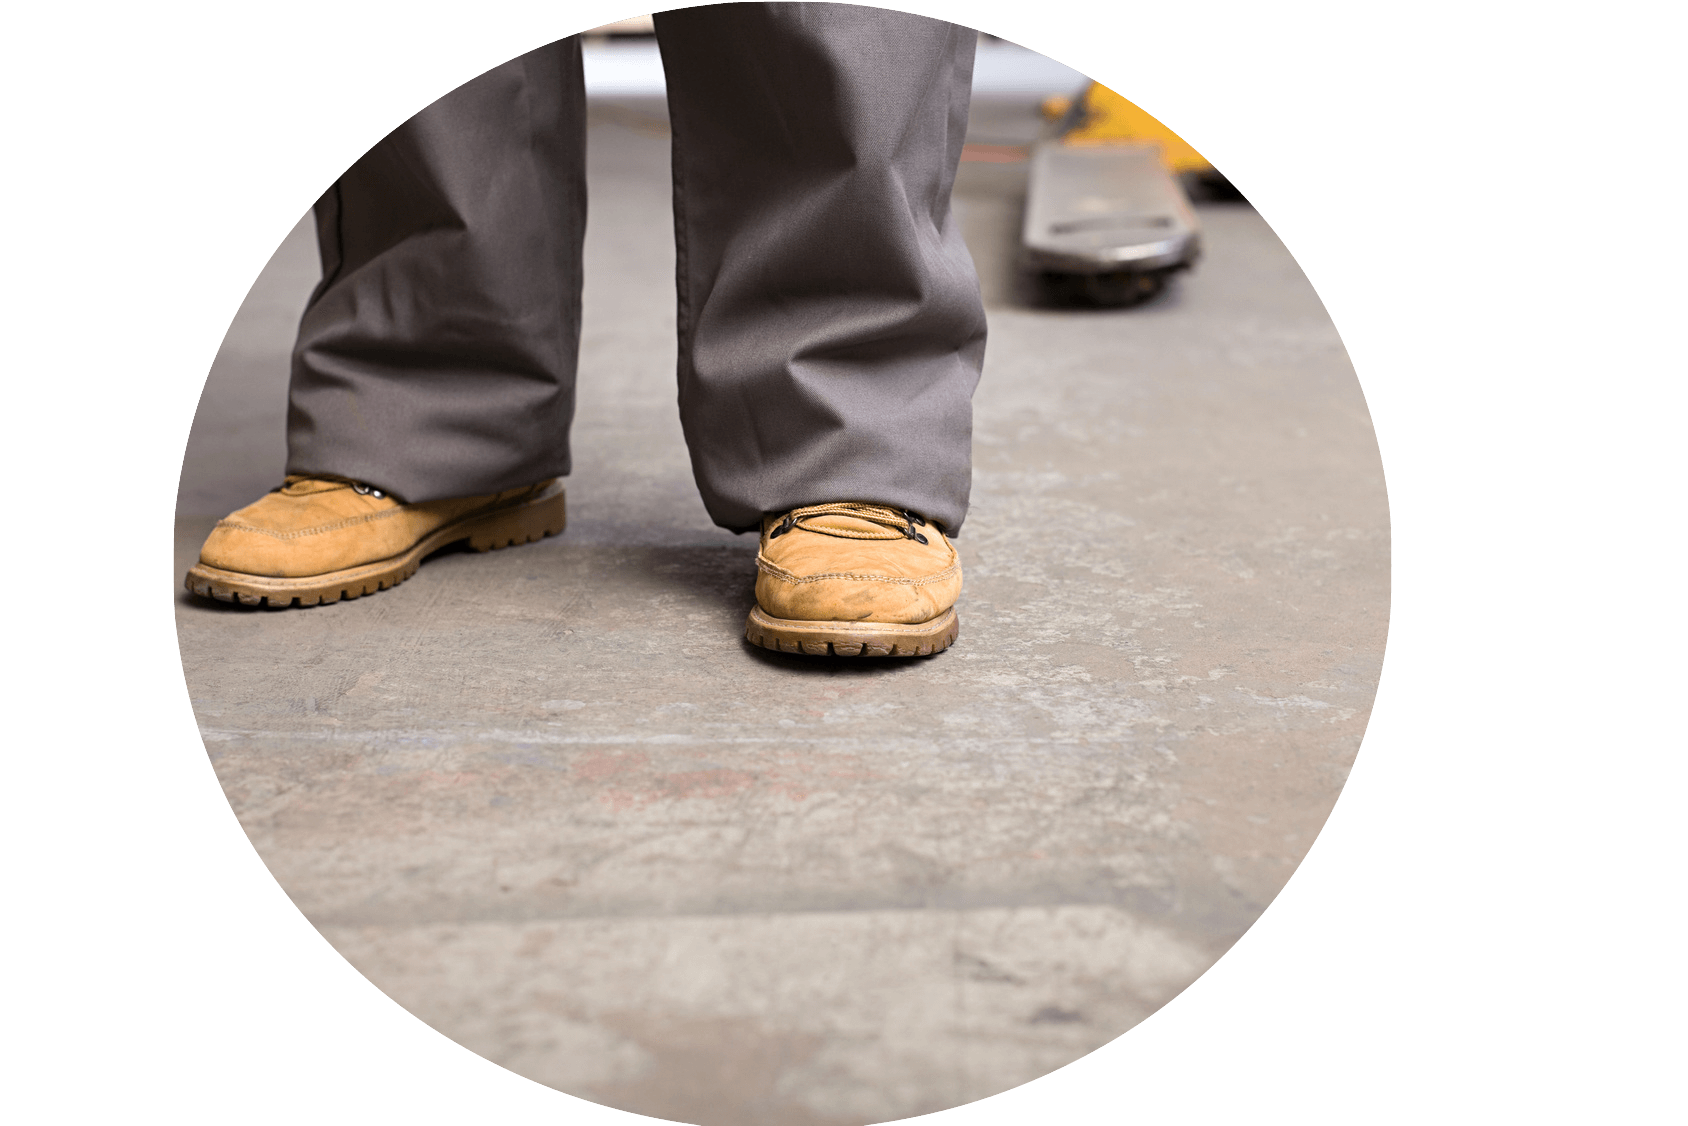 Walking Shoes For Working On Concrete